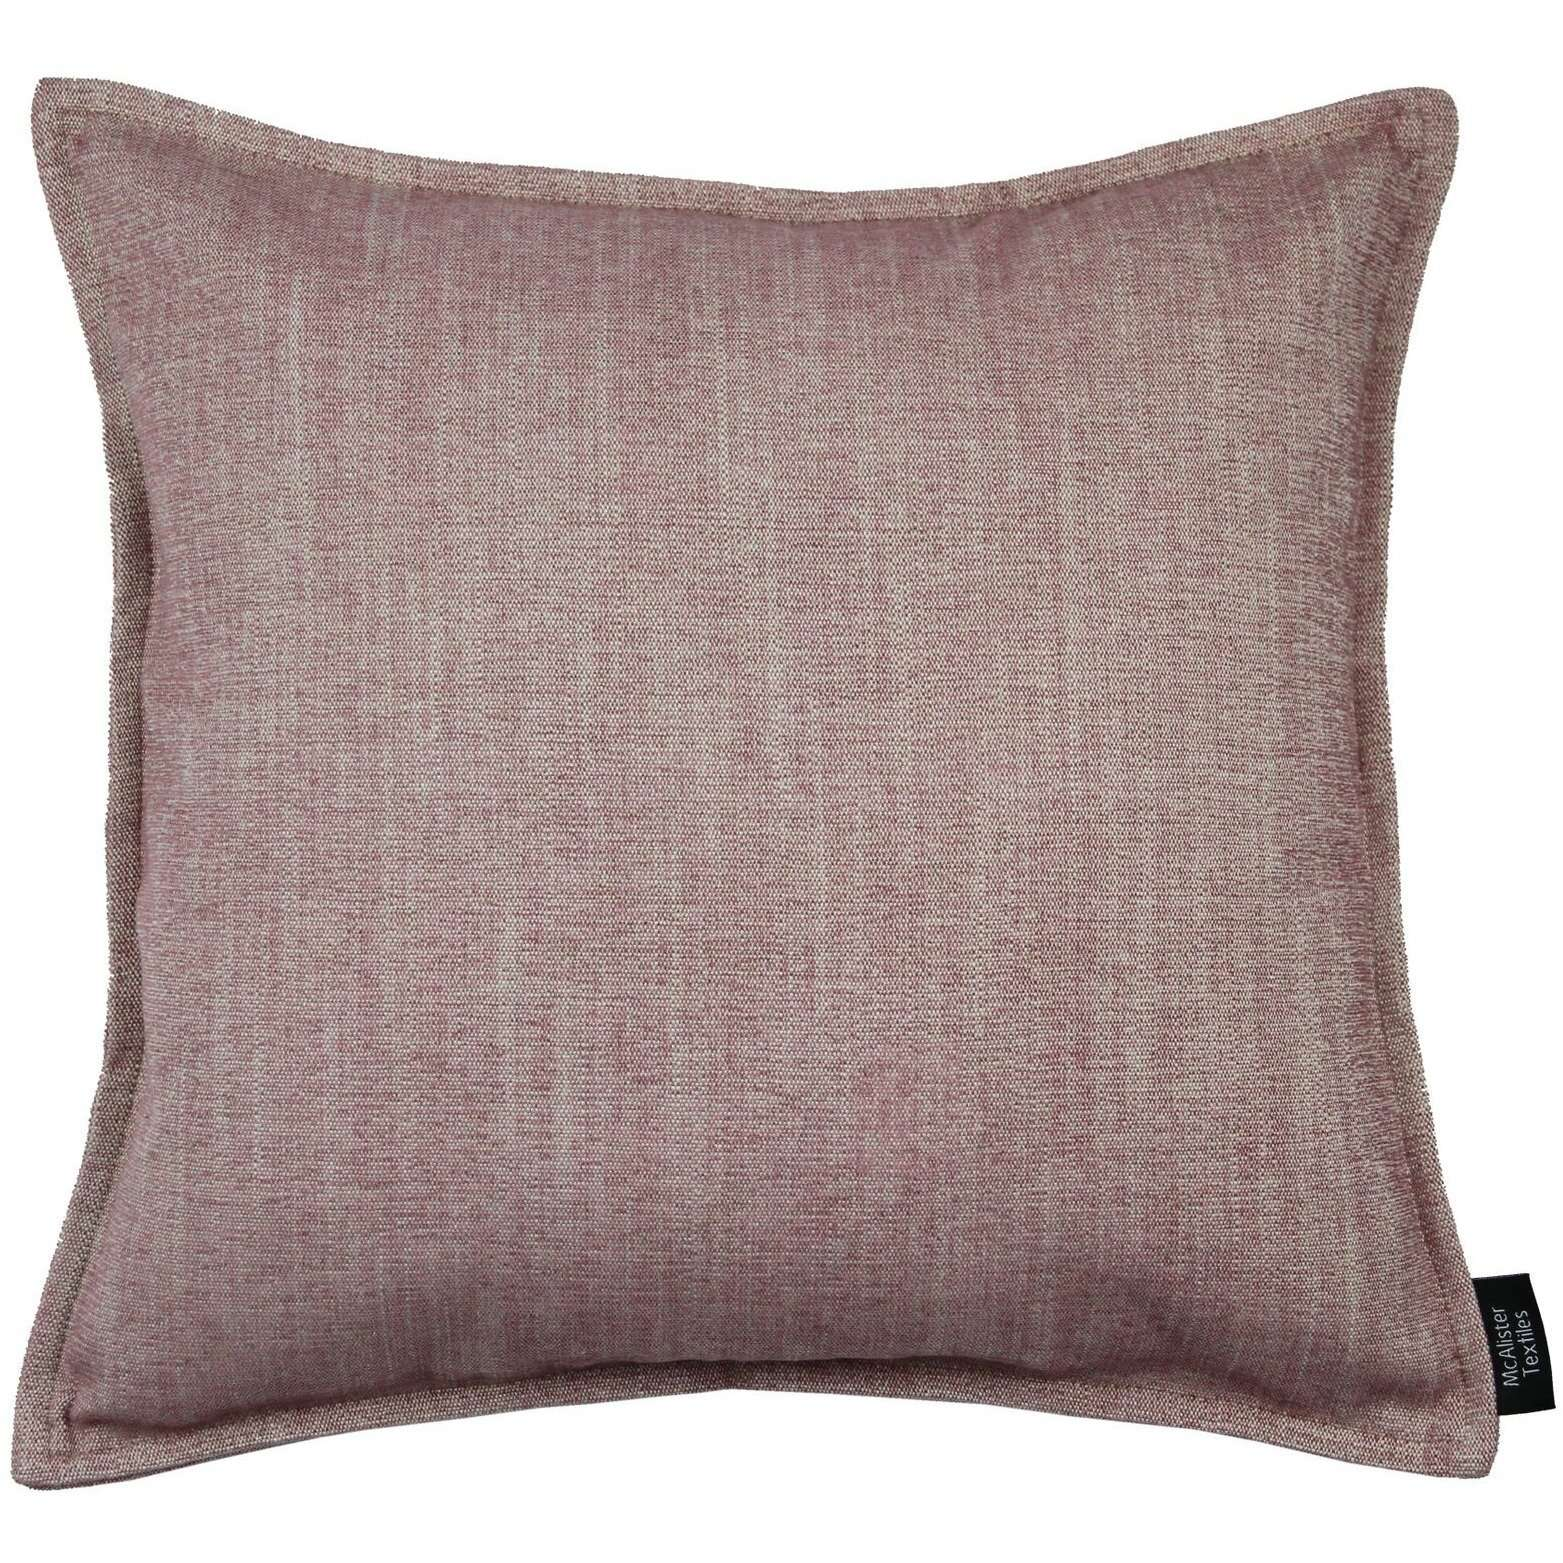 McAlister Textiles Rhumba Blush Pink Cushion Cushions and Covers Cover Only 43cm x 43cm